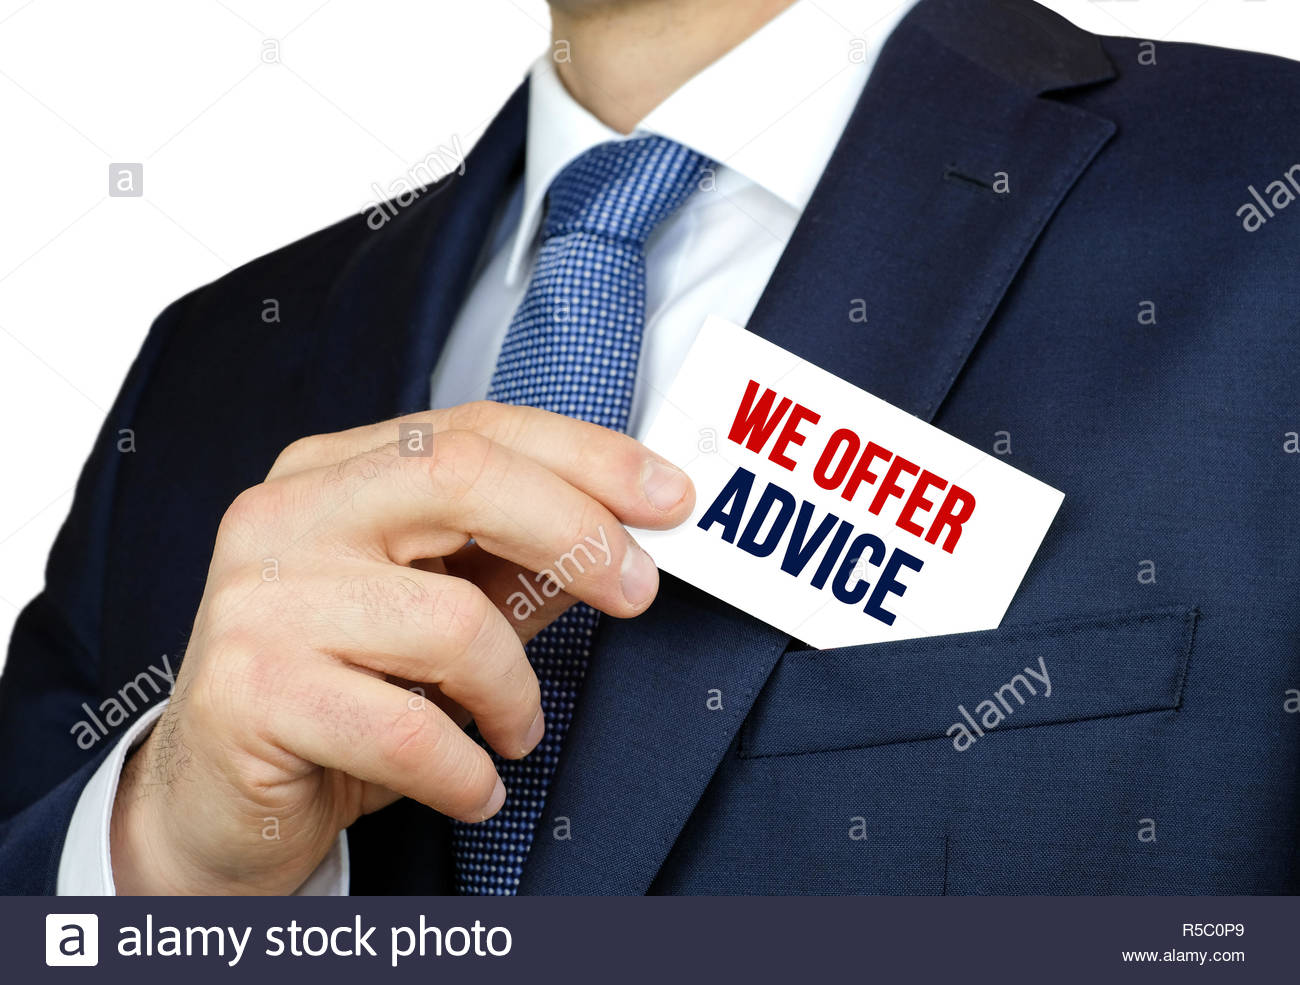 We offer advice - Stock Image